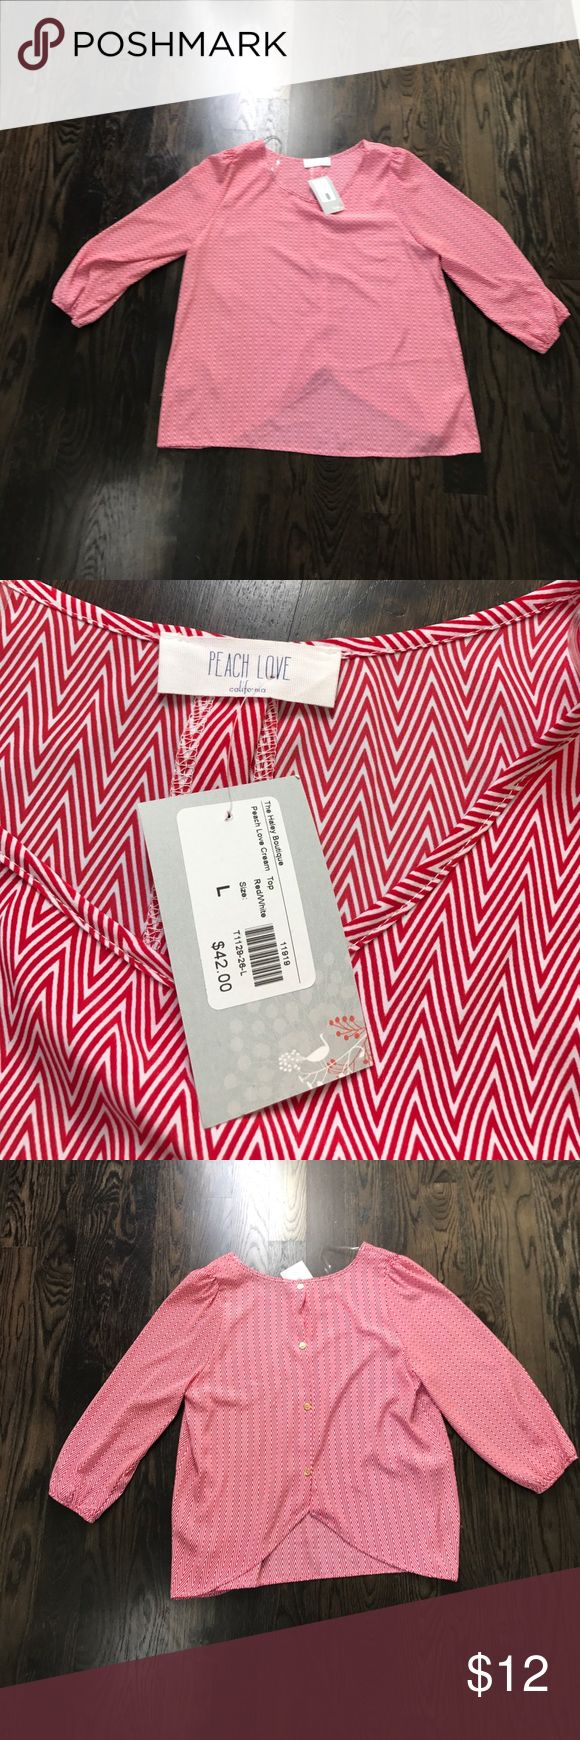 NWT Red Chevron Top NWT Red Chevron top. Light-weight and silky. Cute with white jeans or shorts. Peach Love Tops